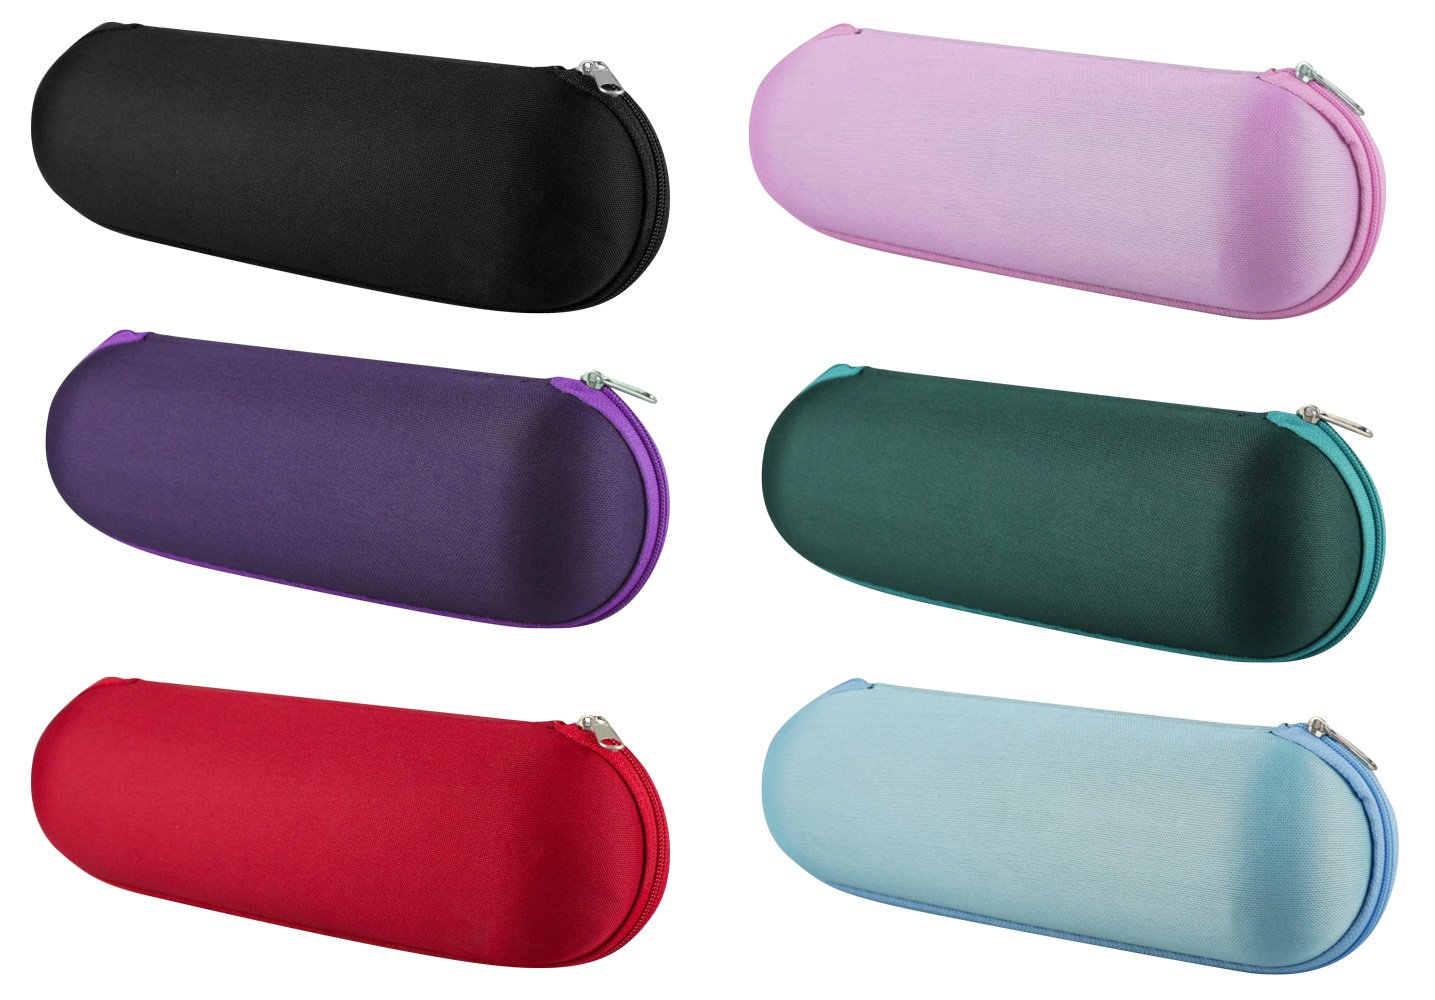 Hard-case Shell Pouch - Assorted Colors (Large) Skeye